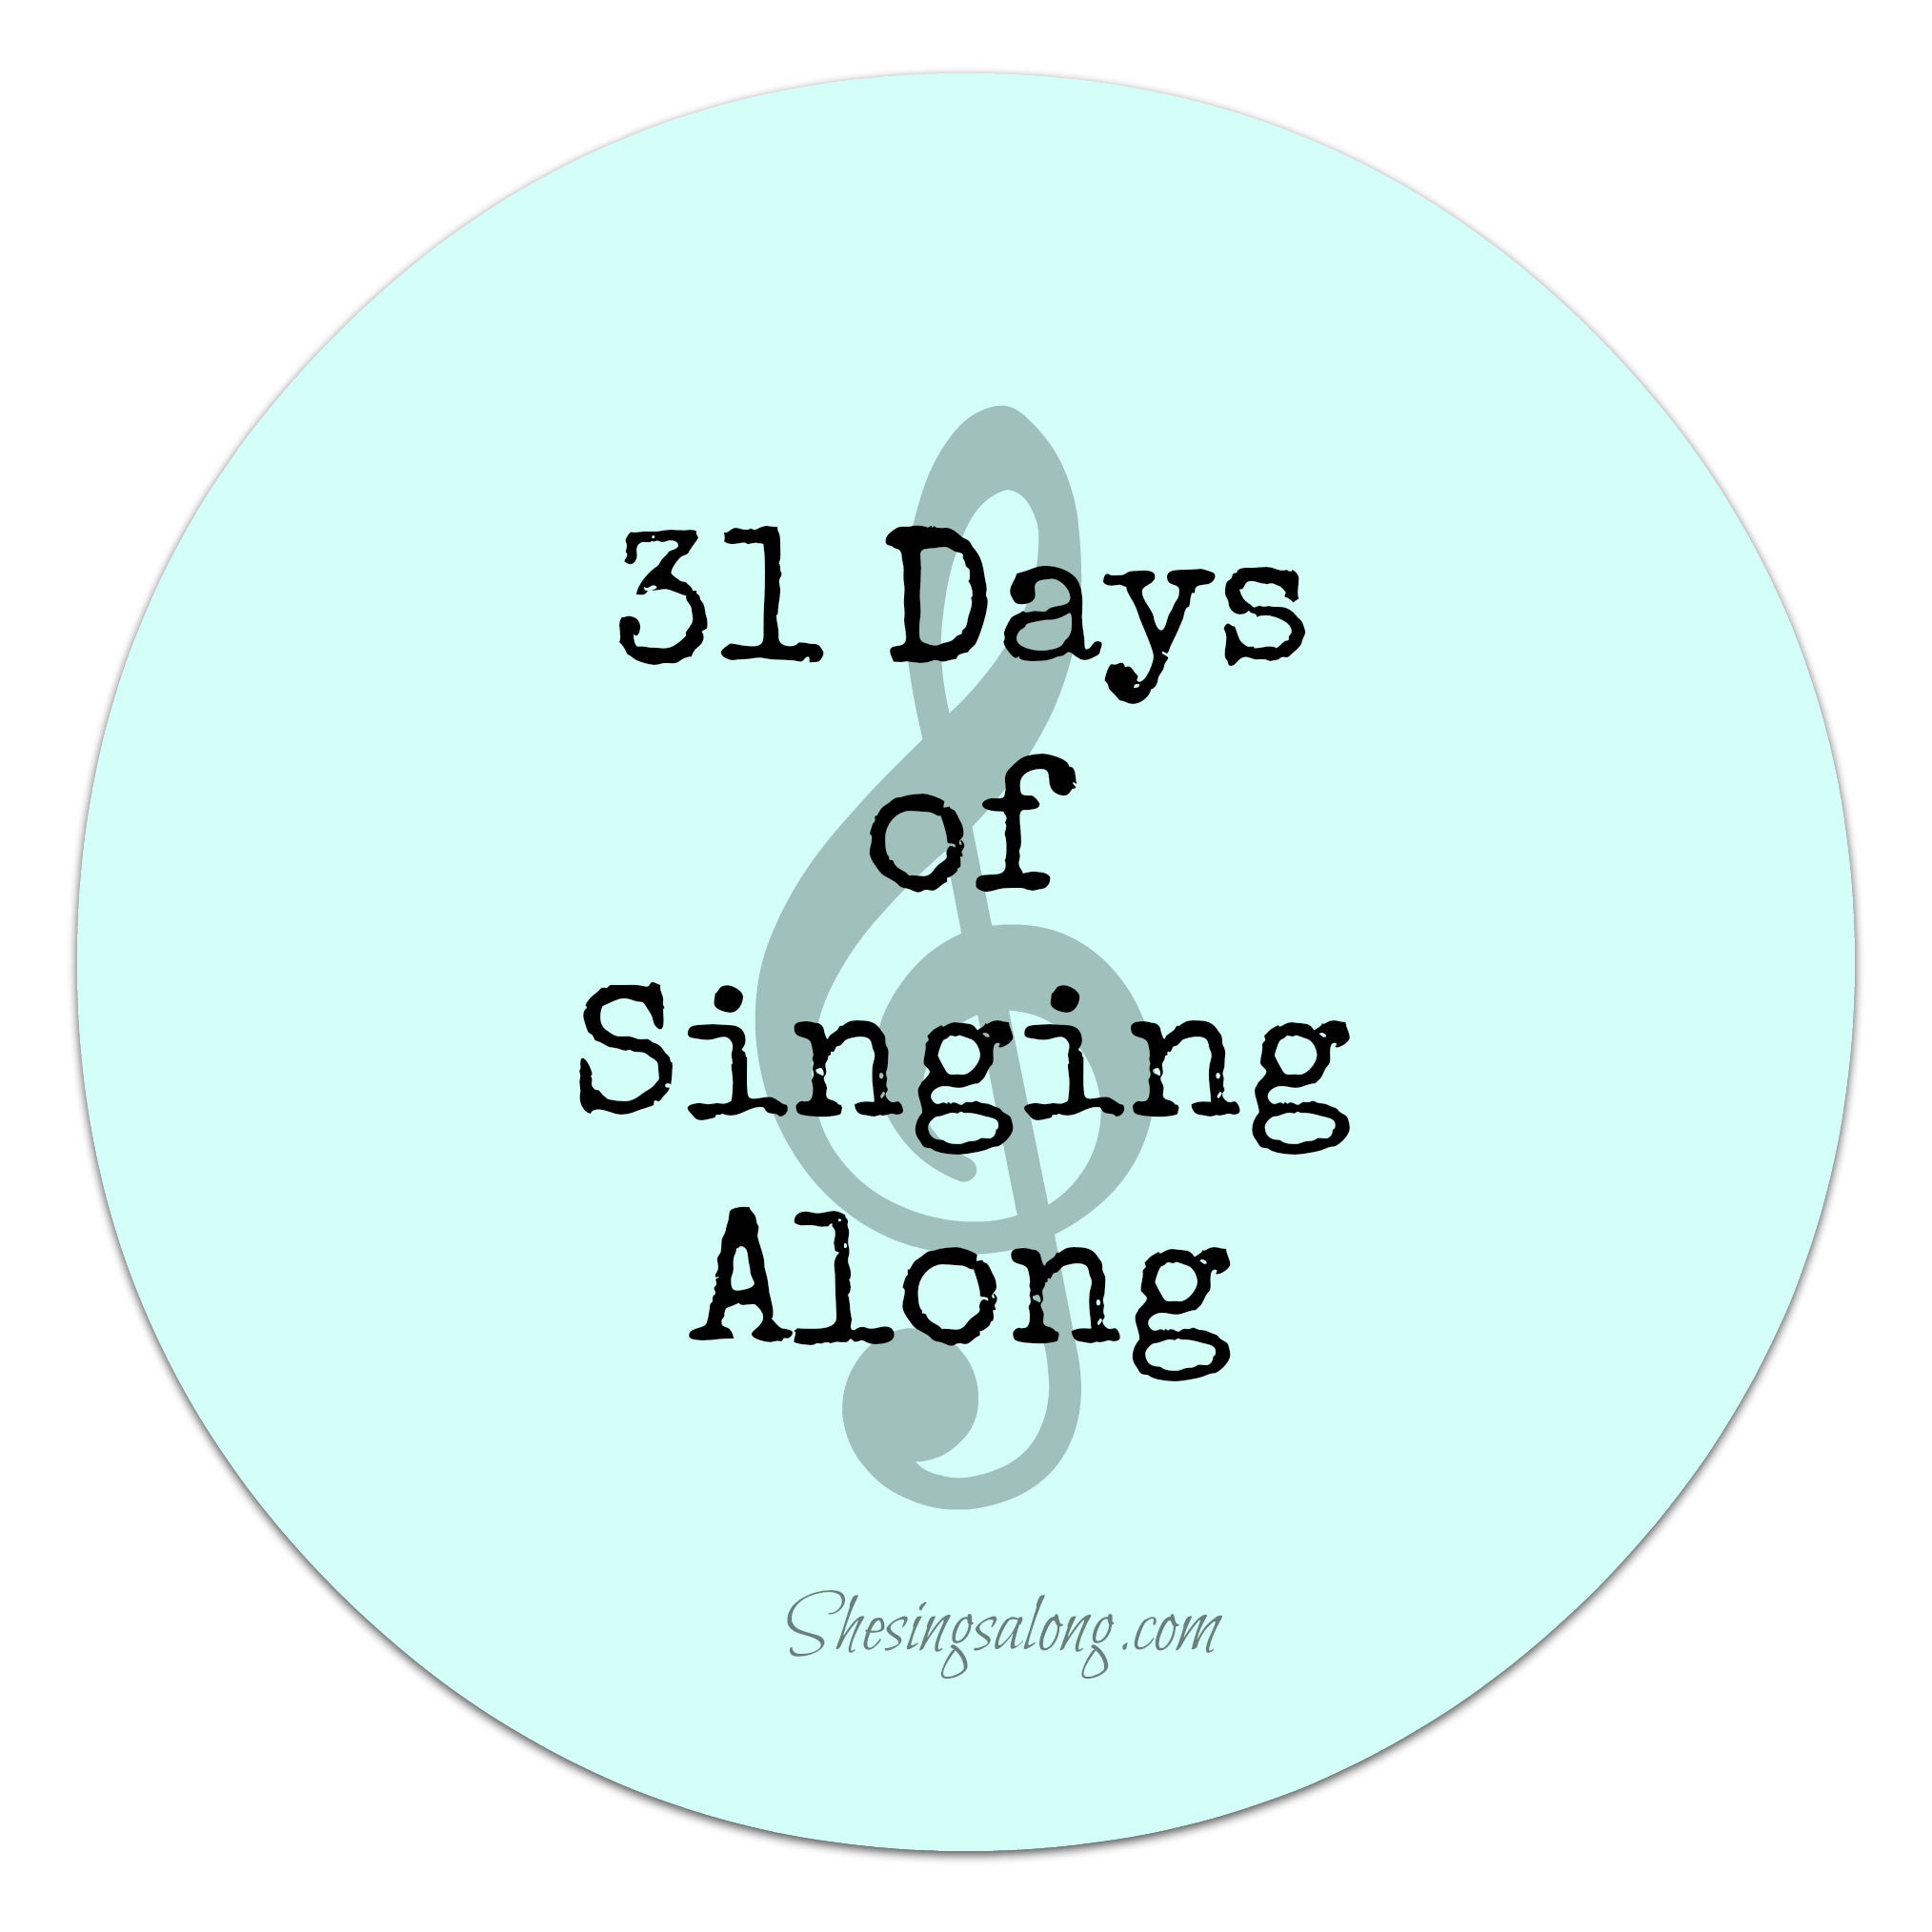 31 days of singing along